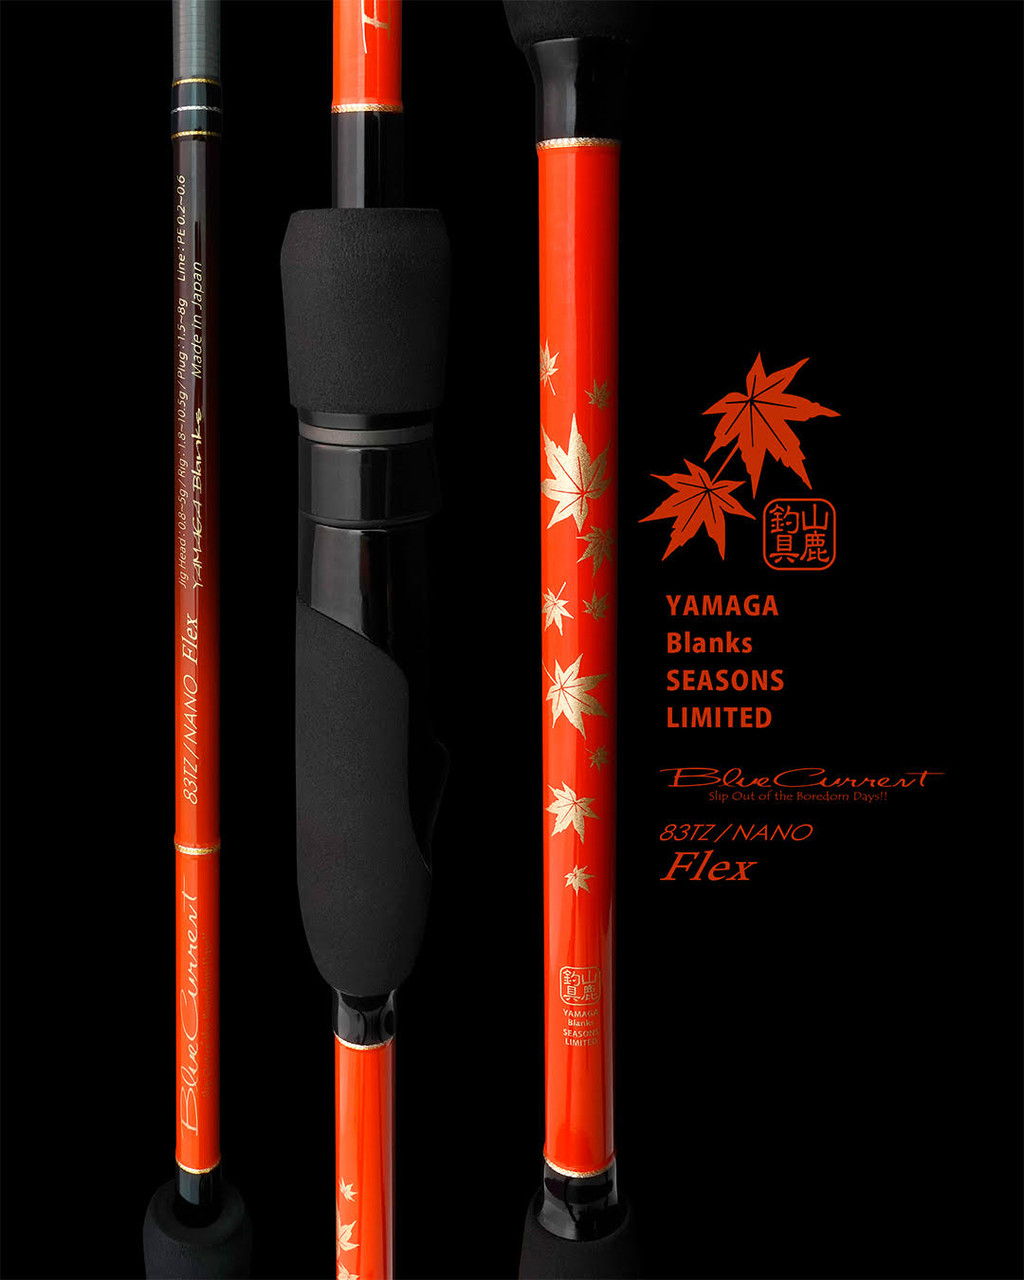 Yamaga Blanks Four Seasons (Autumn) Limited Edition